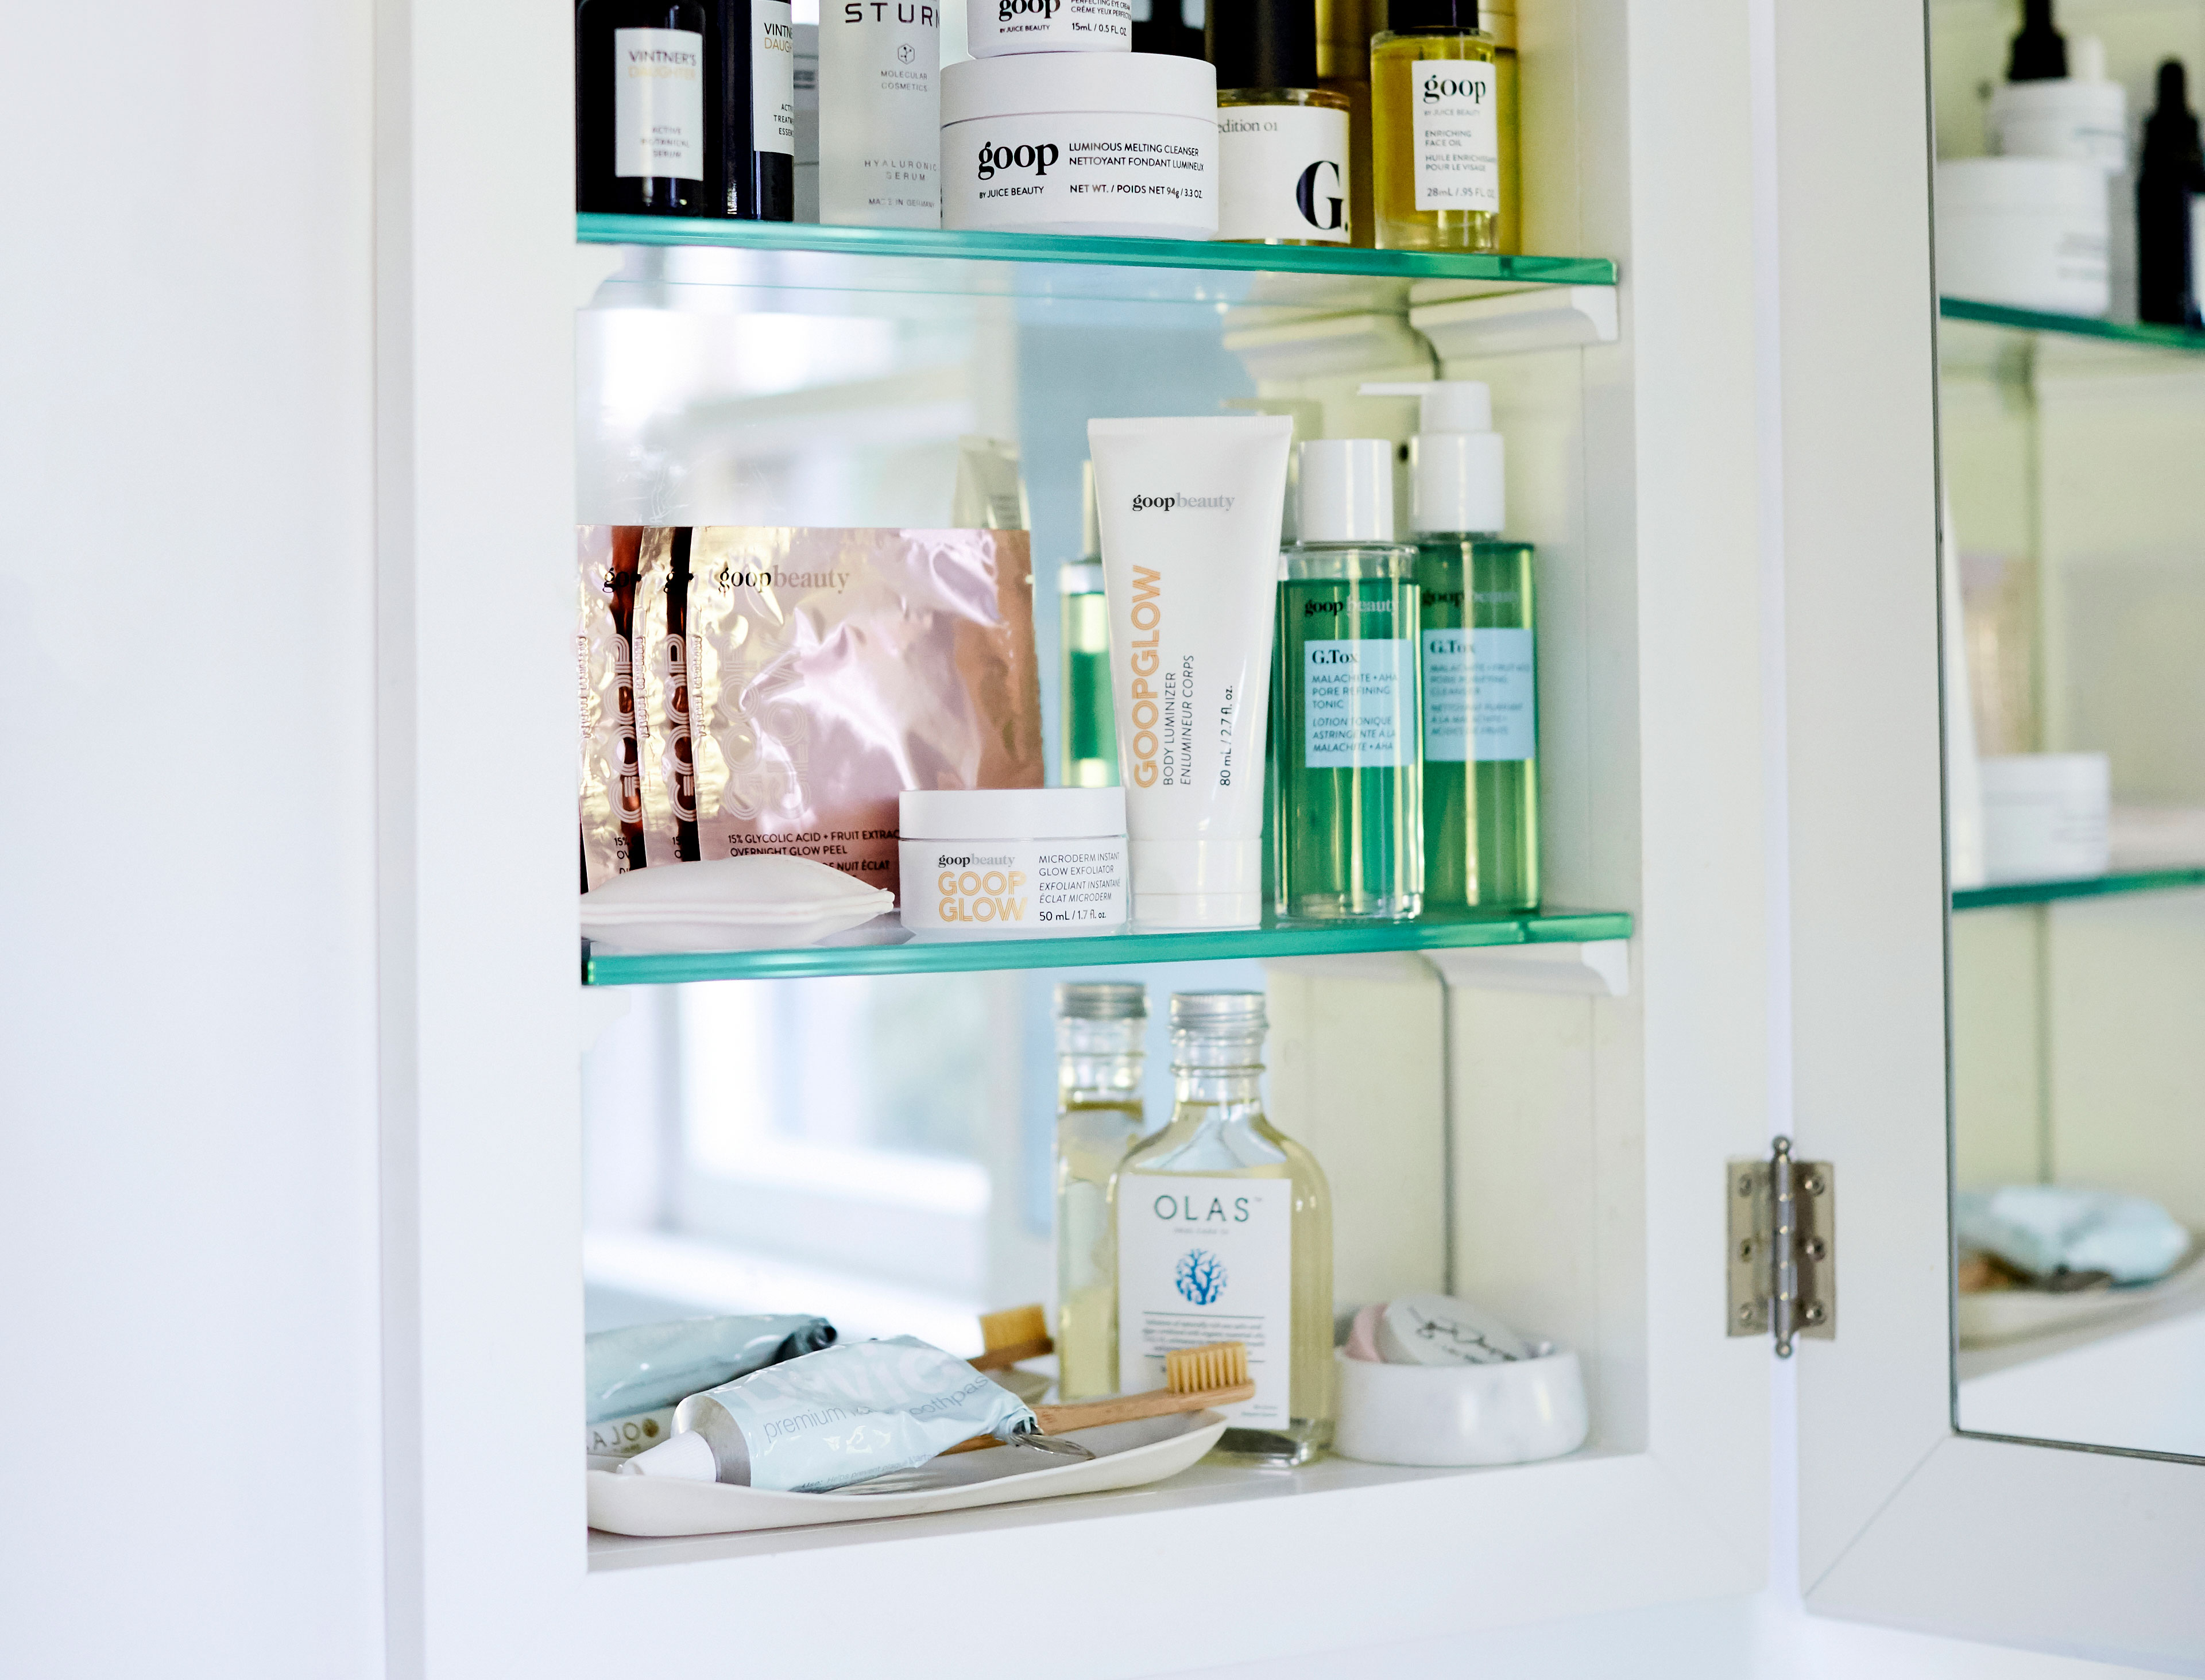 12 Medicine-Cabinet Staples and Tips  for Detoxing Your Bathroom